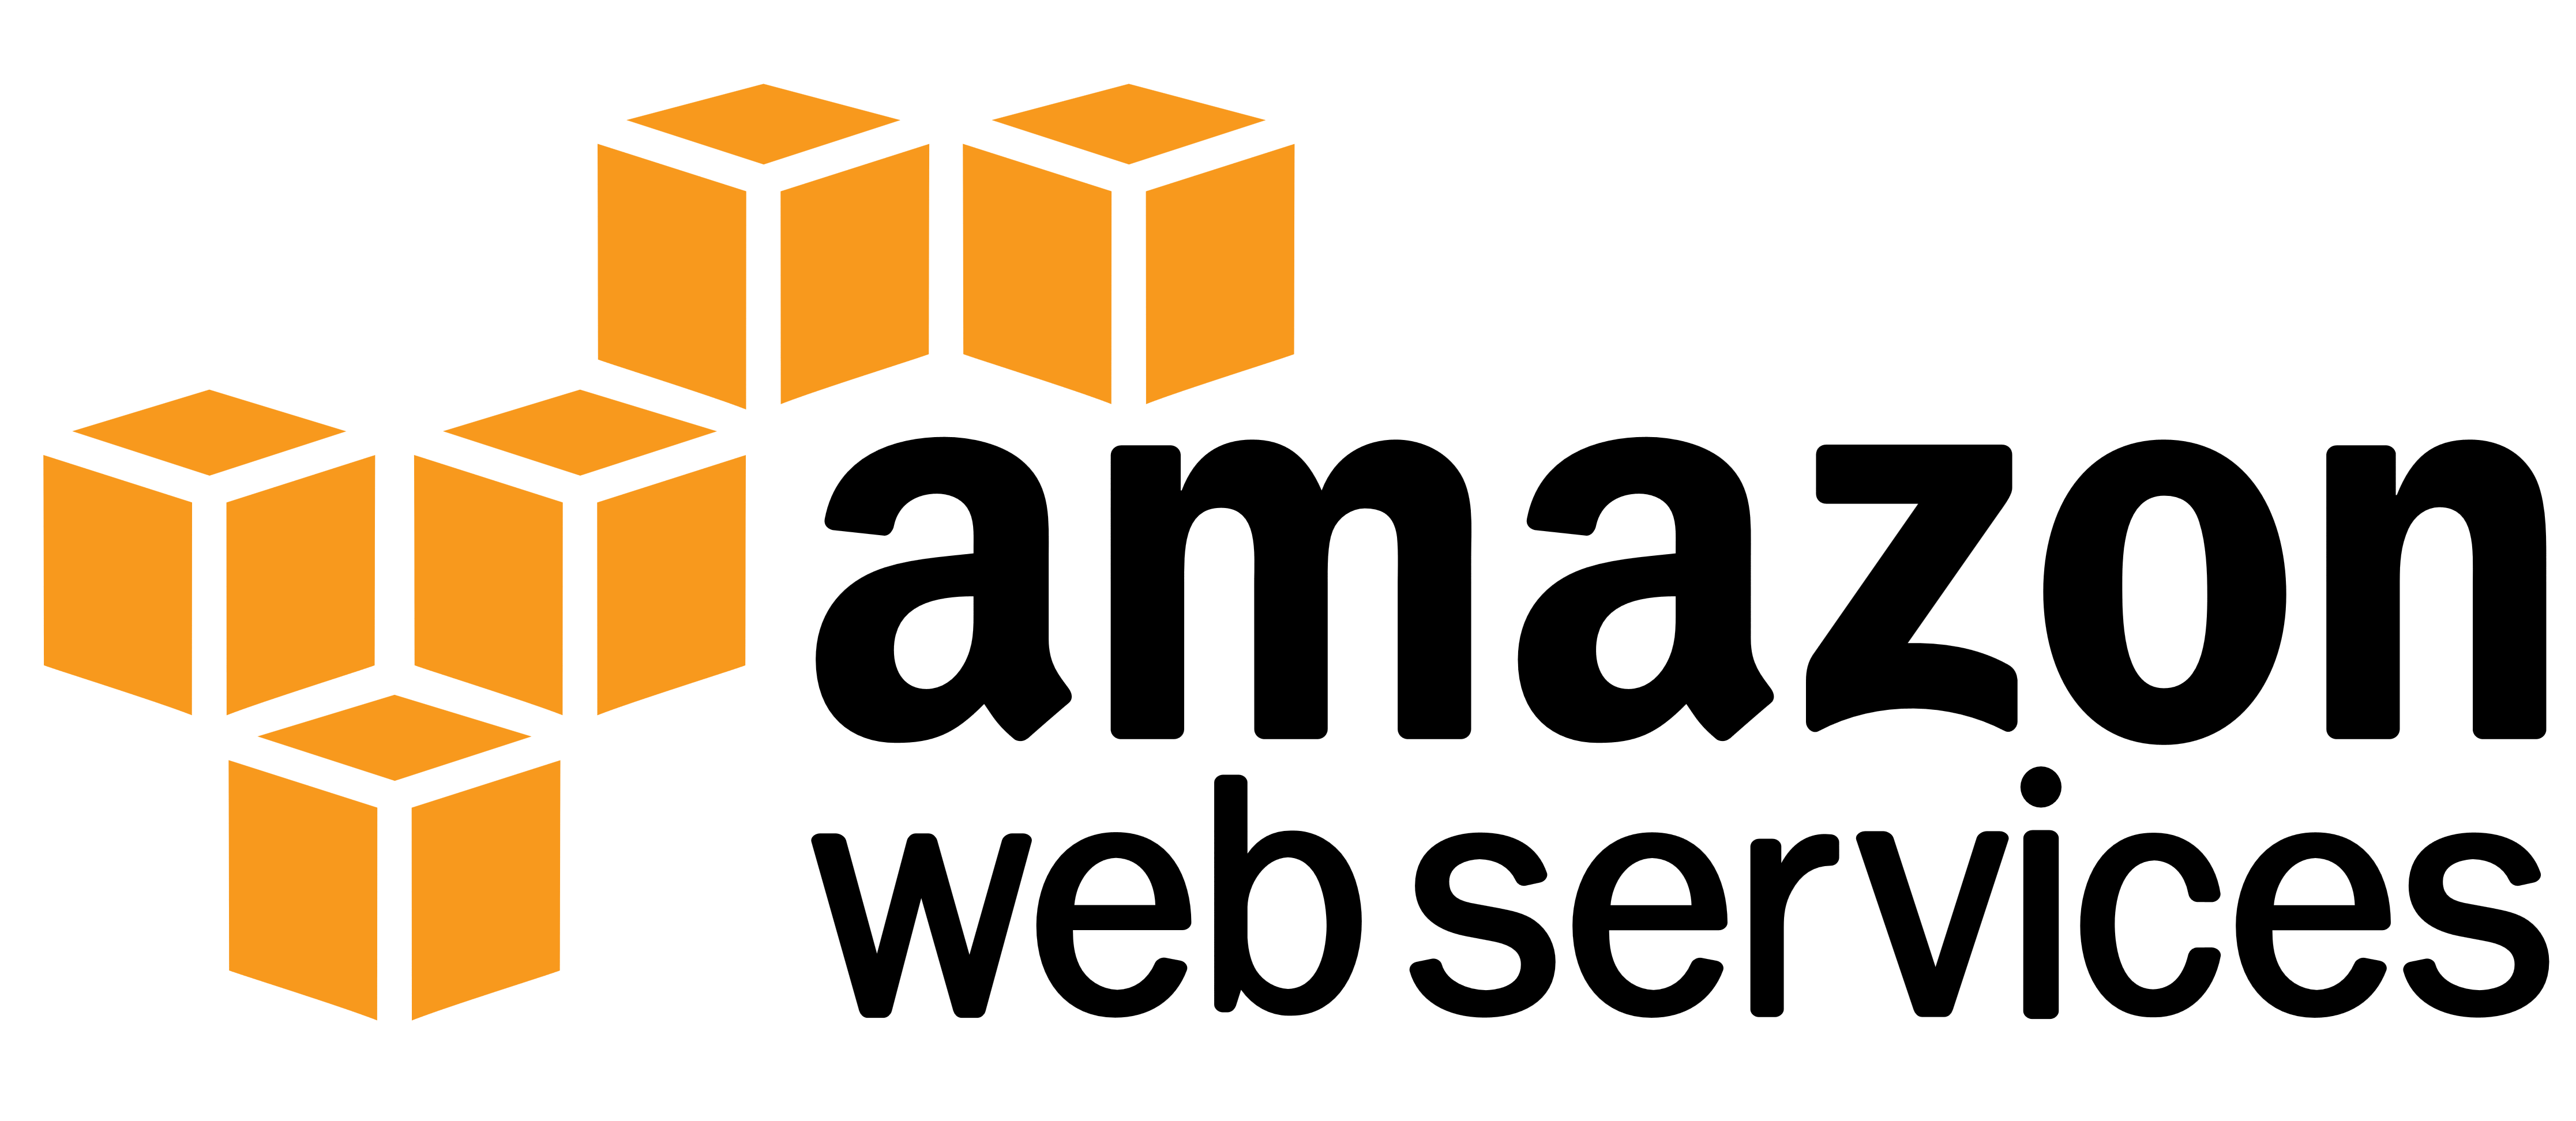 How to Install an SSL Certificate in Amazon Web Service (AWS